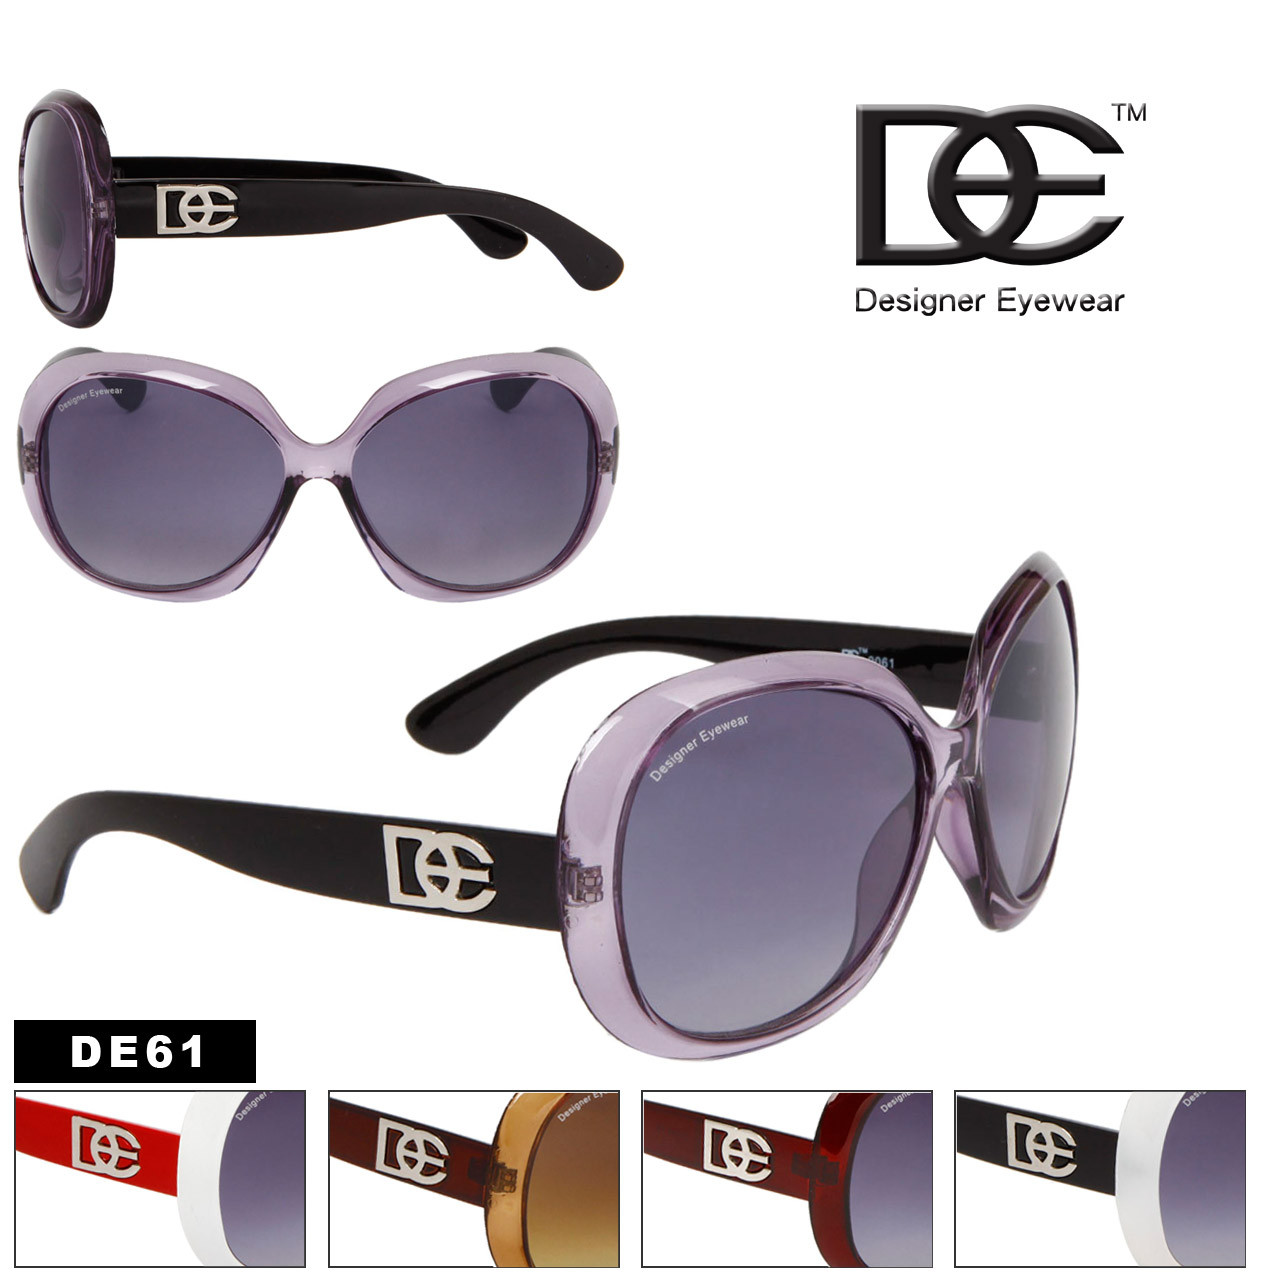 DE61 Designer Eyewear Women's Sunglasses